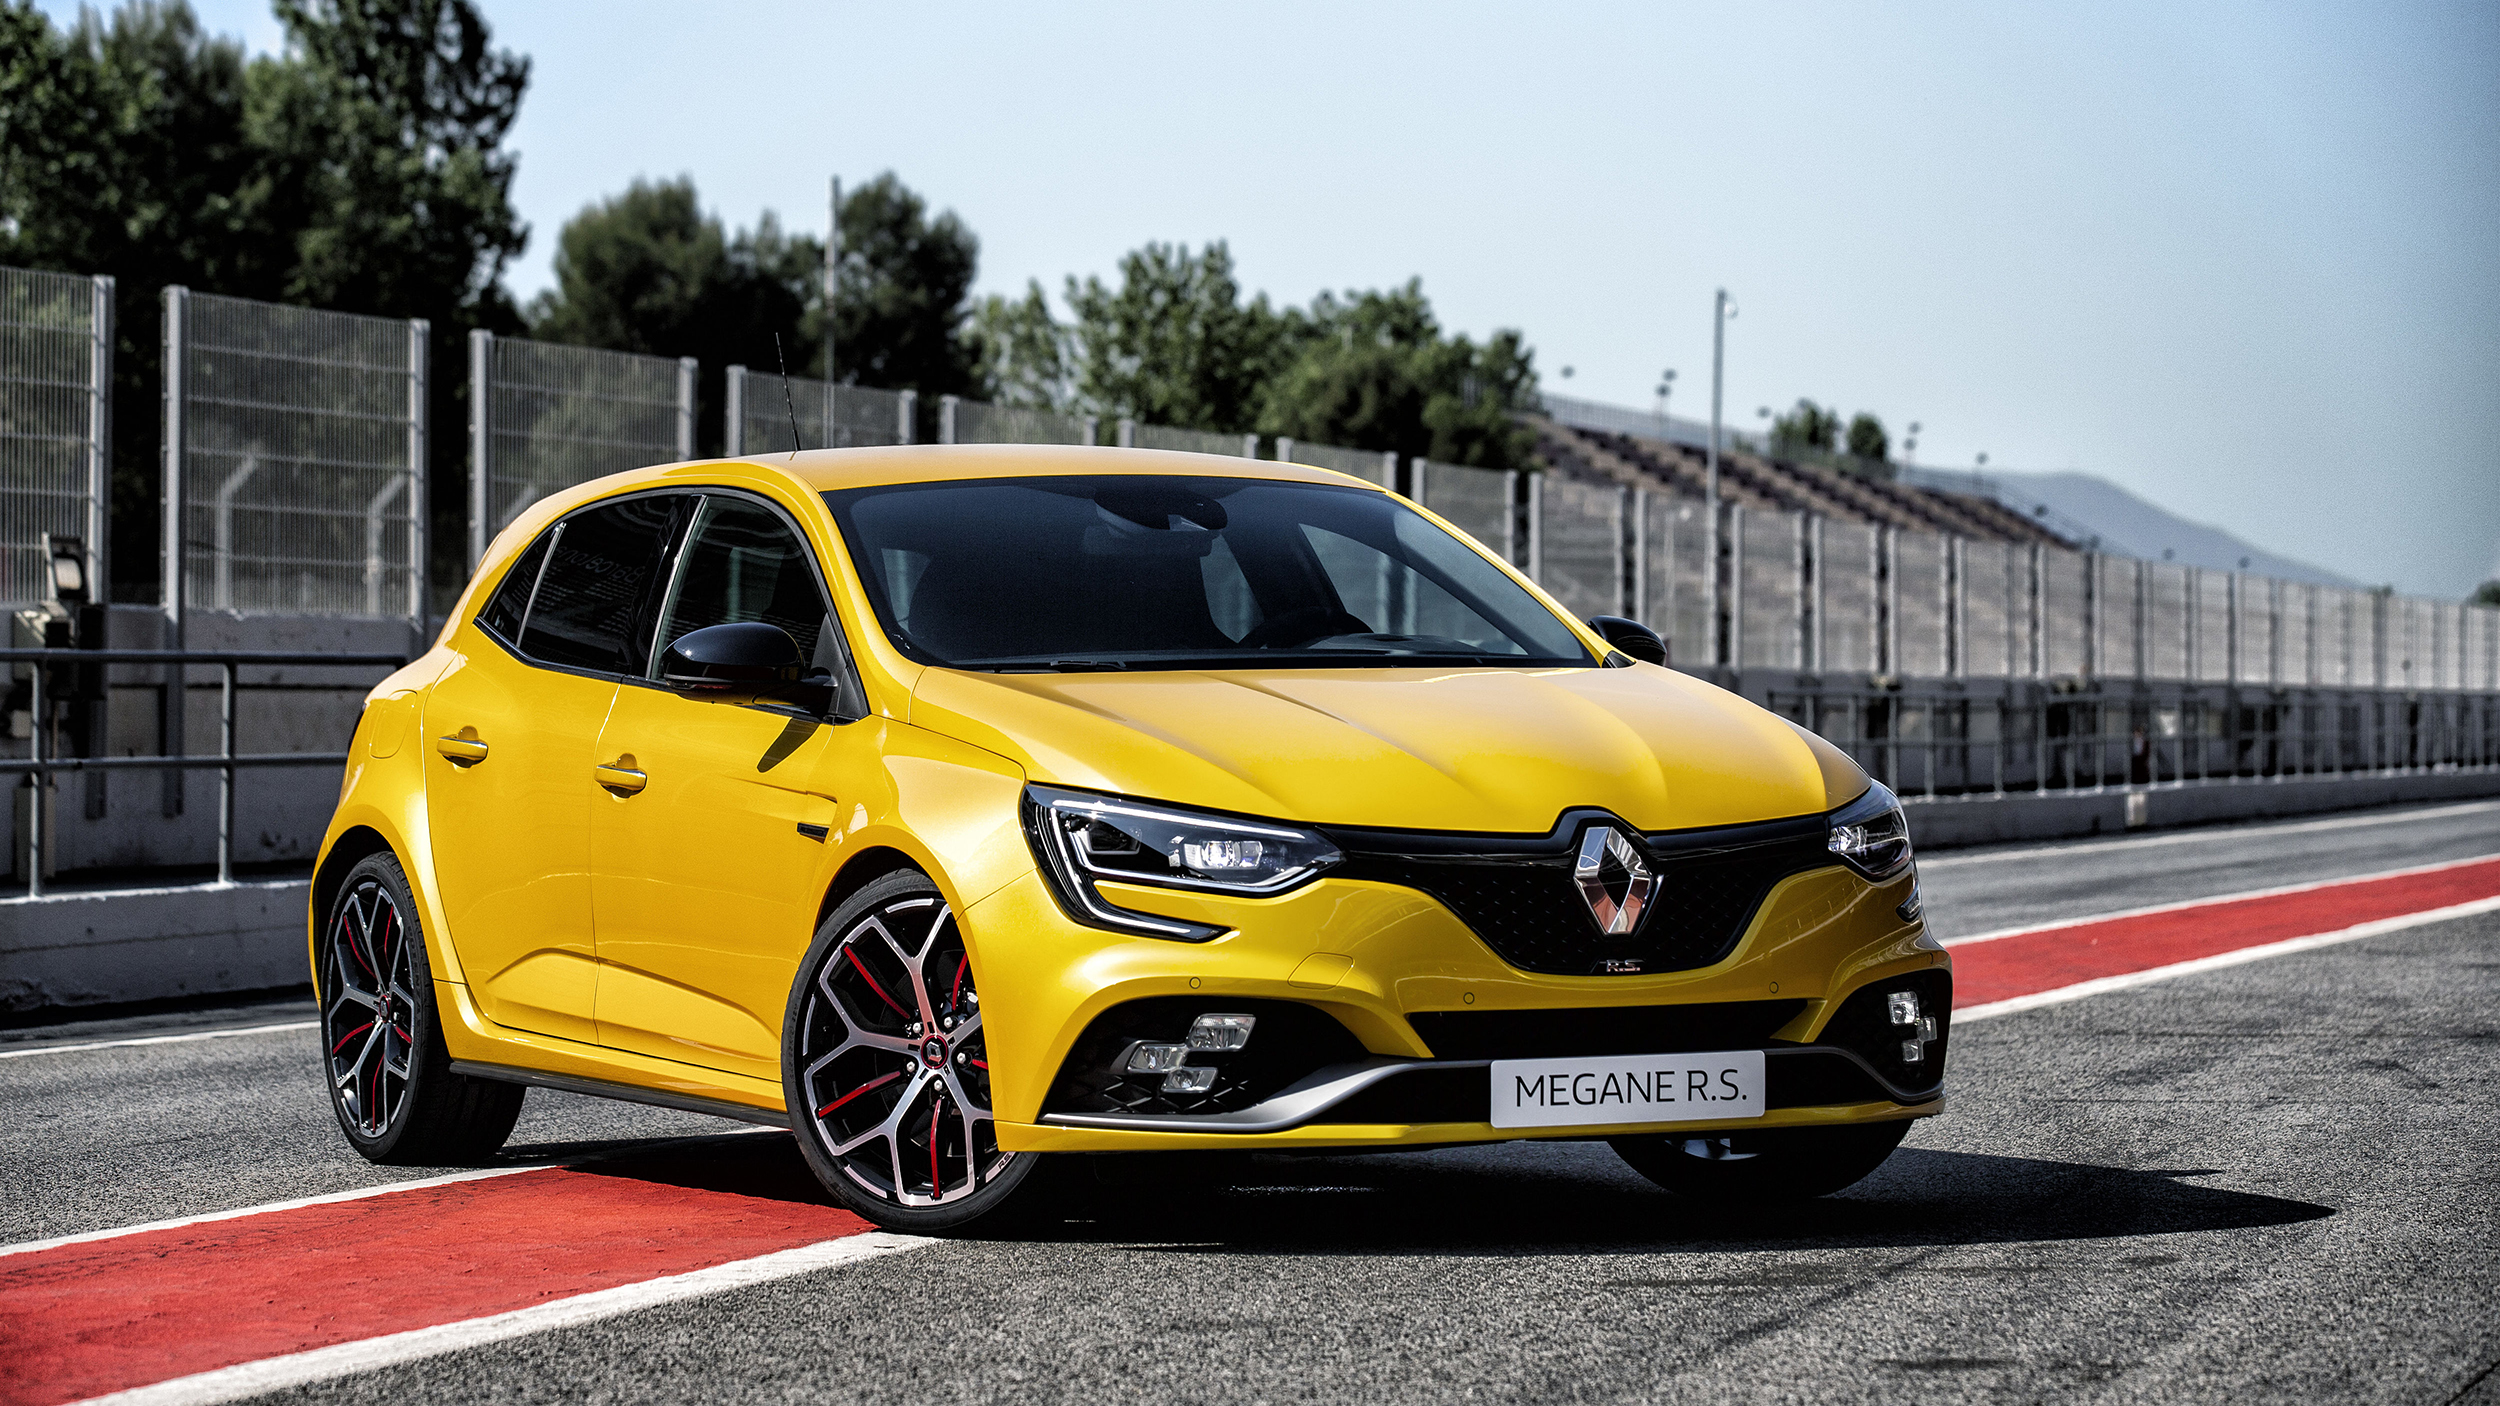 The New Renault Megane Rs Trophy Has 296bhp And Bucket